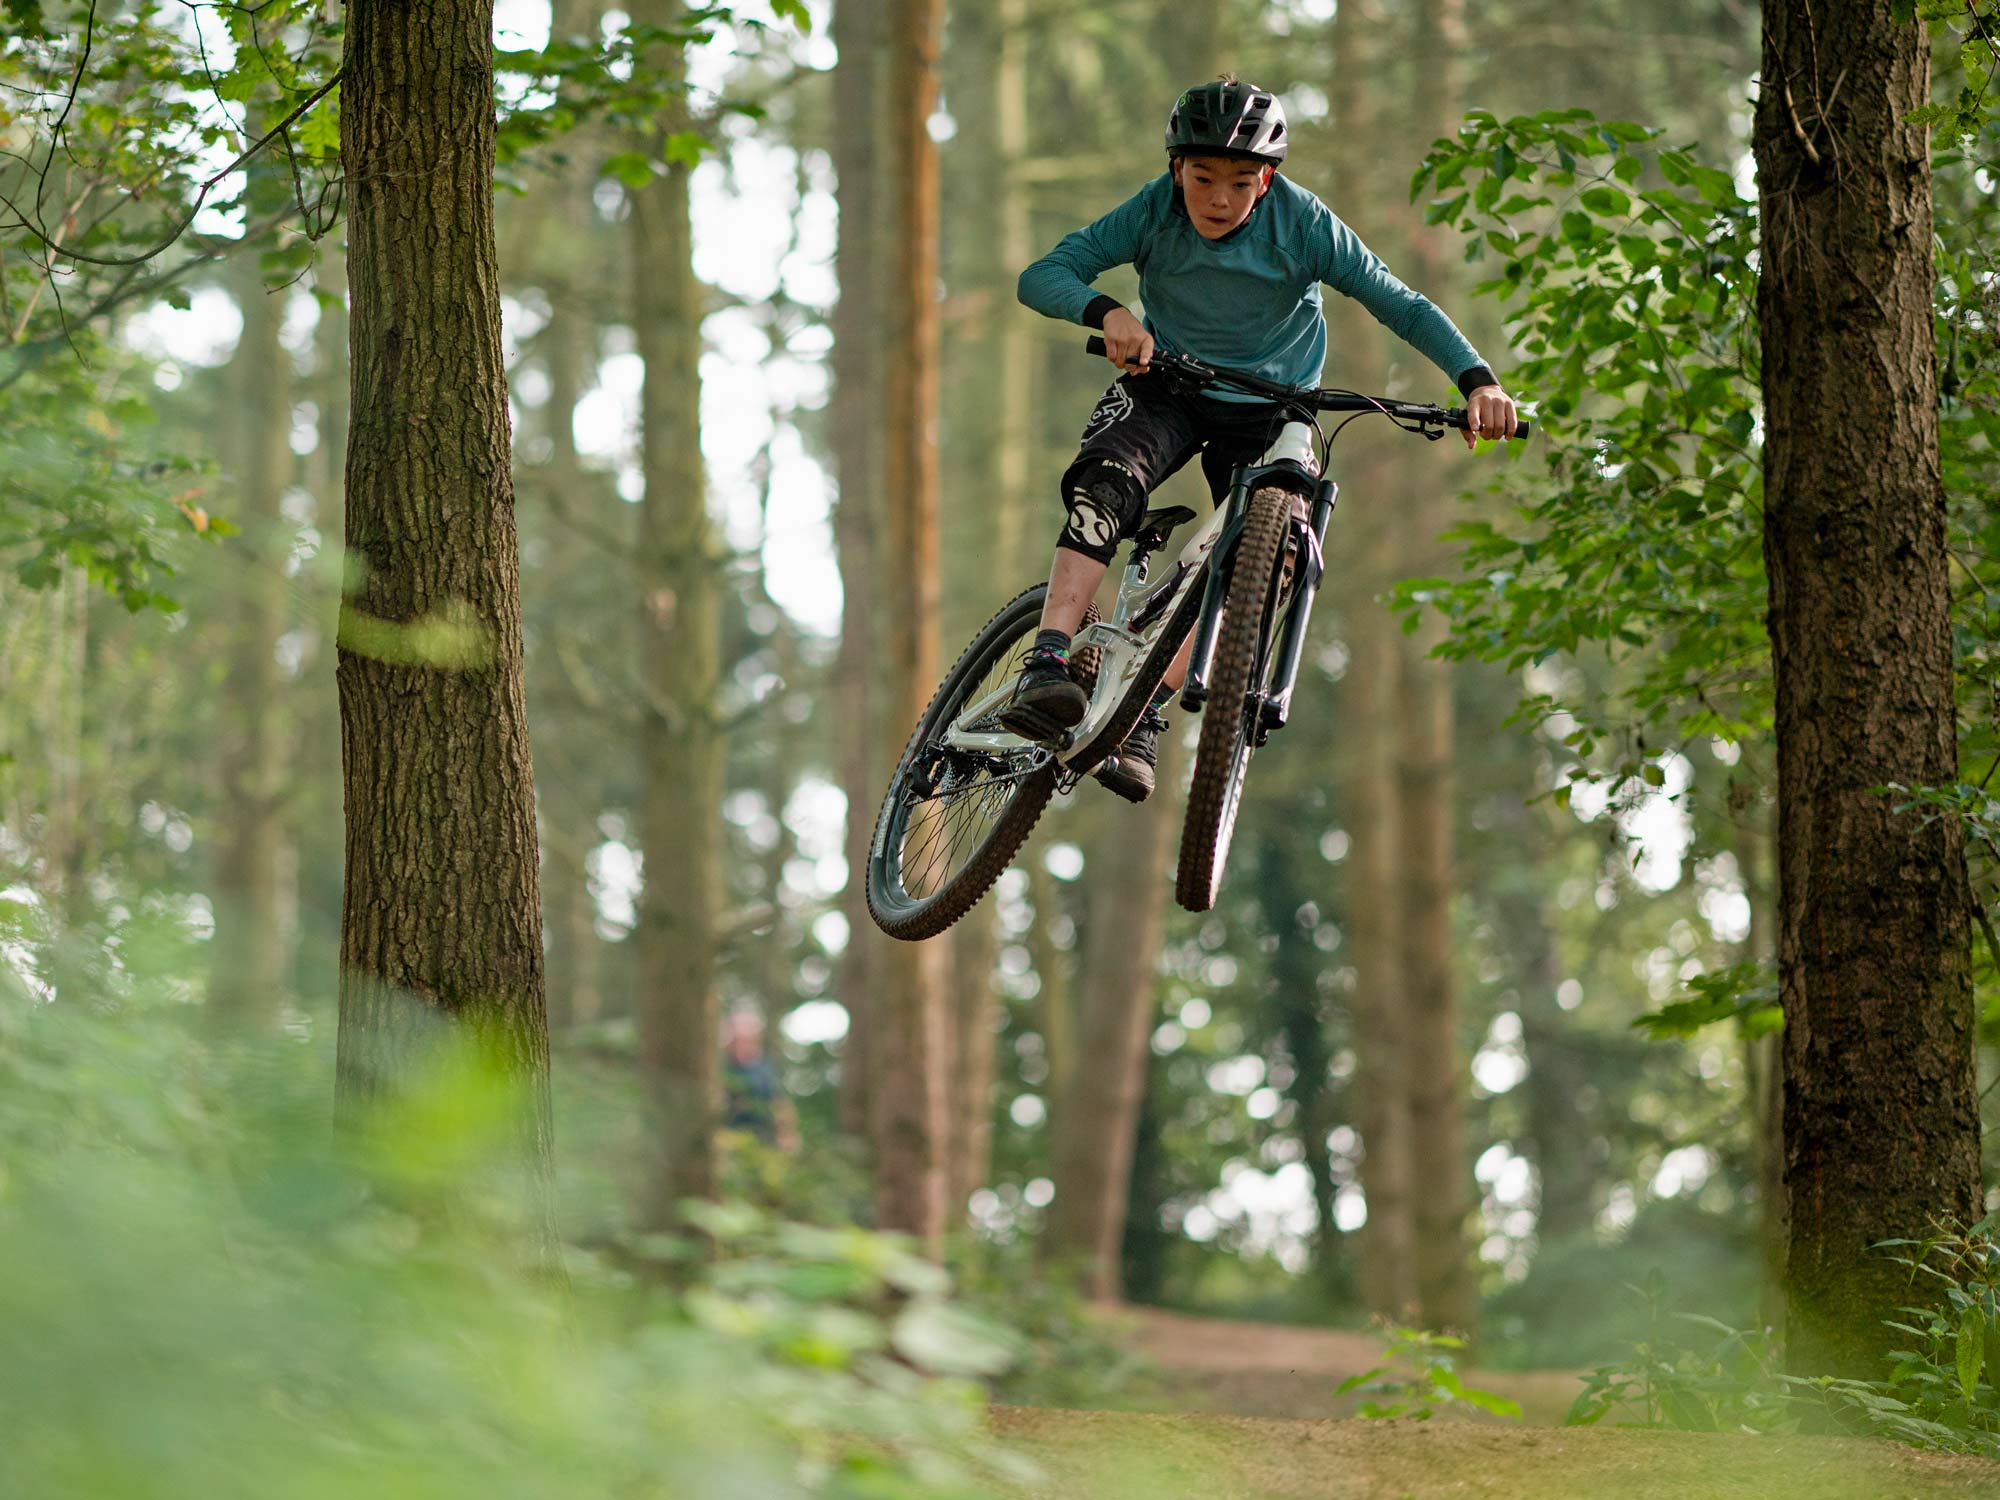 2022 Canyon Spectral AL affordable alloy trail all-mountain bike, photo by Roo Fowler,young hero airtime